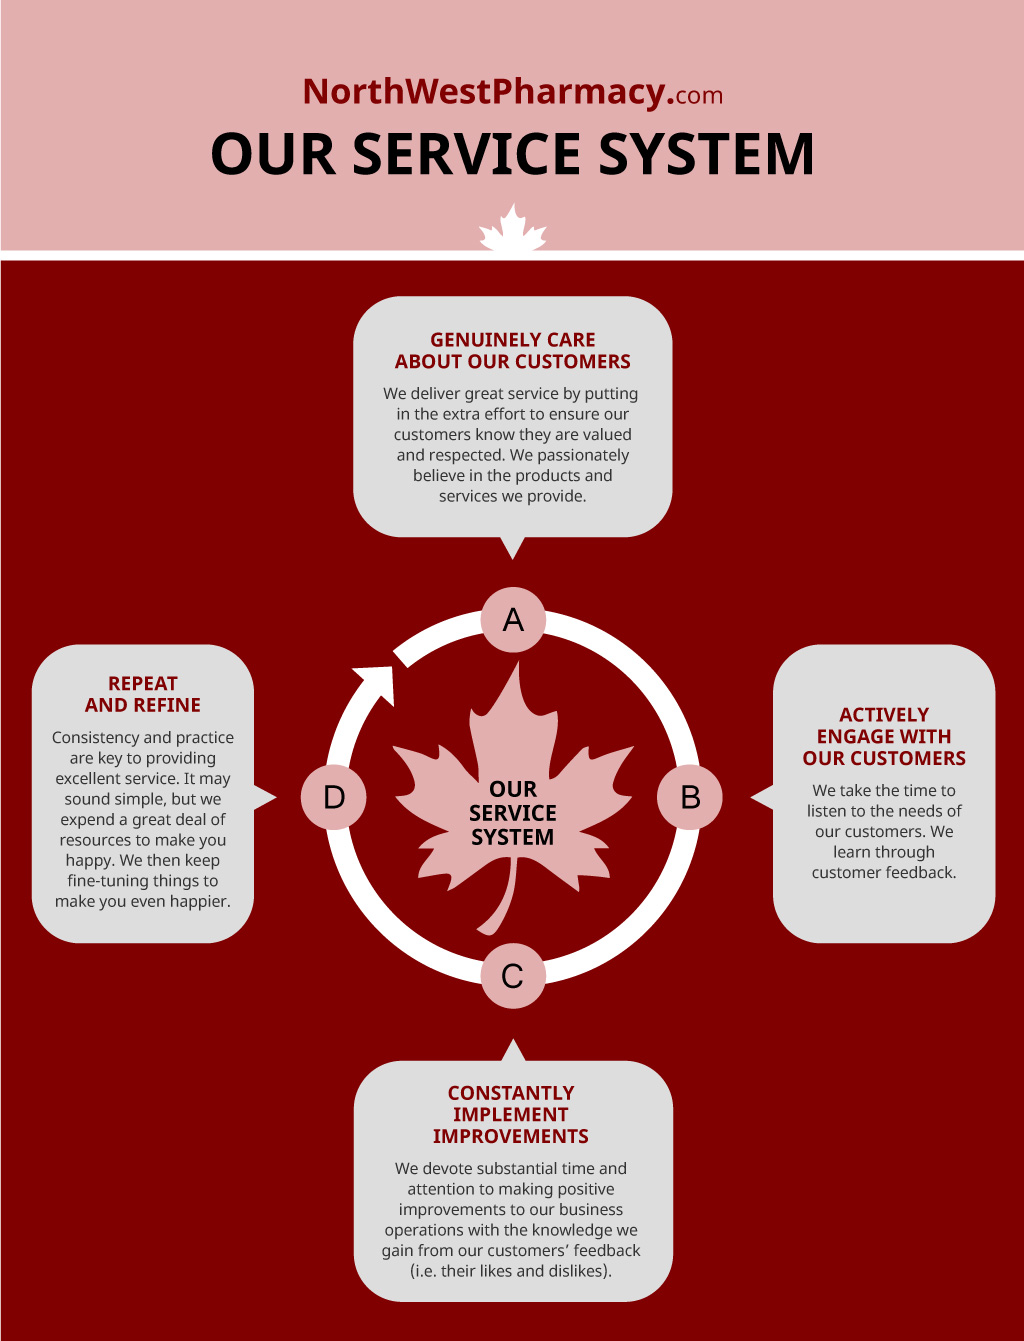 Our Service System